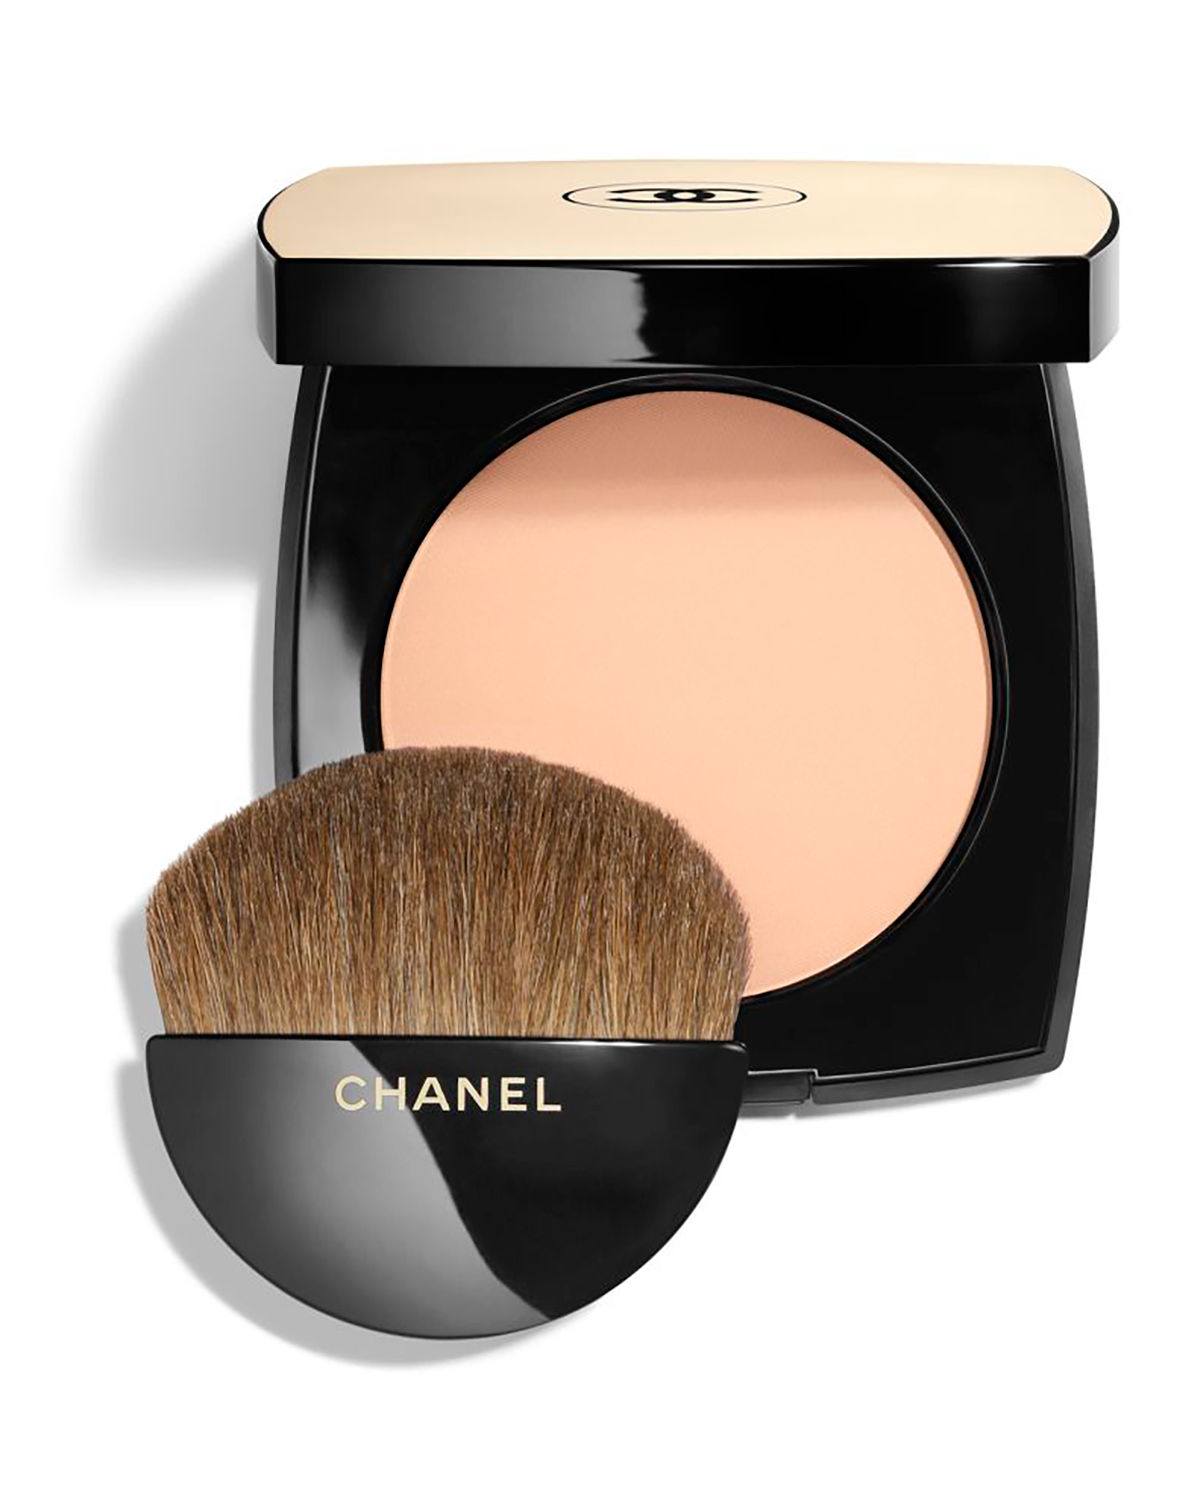 CHANEL <b>LES BEIGES<br></b>HEALTHY GLOW SHEER POWDER